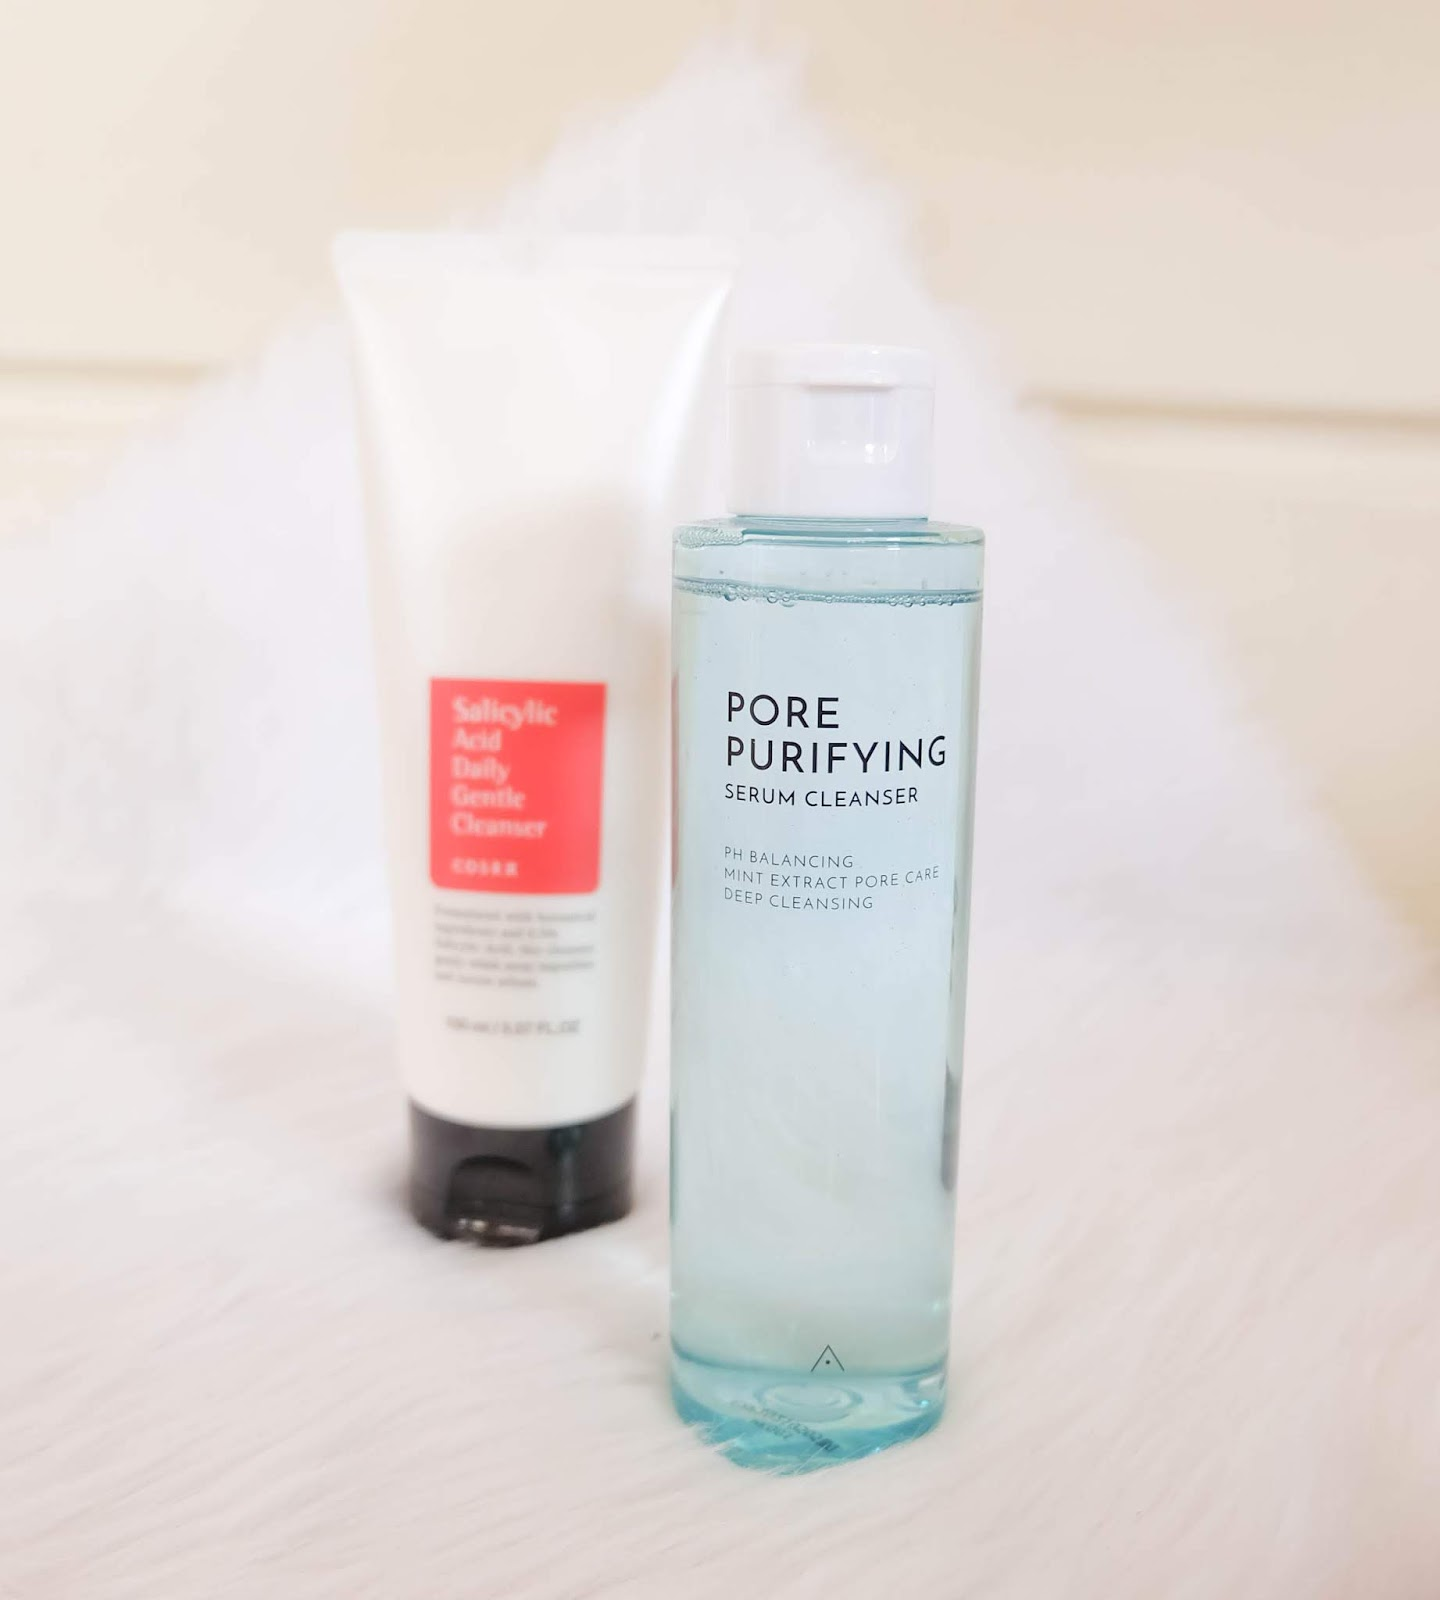 Althea Pore Purifying Serum Cleanser and CosRx Salicylic Acid Daily Gentle Cleanser